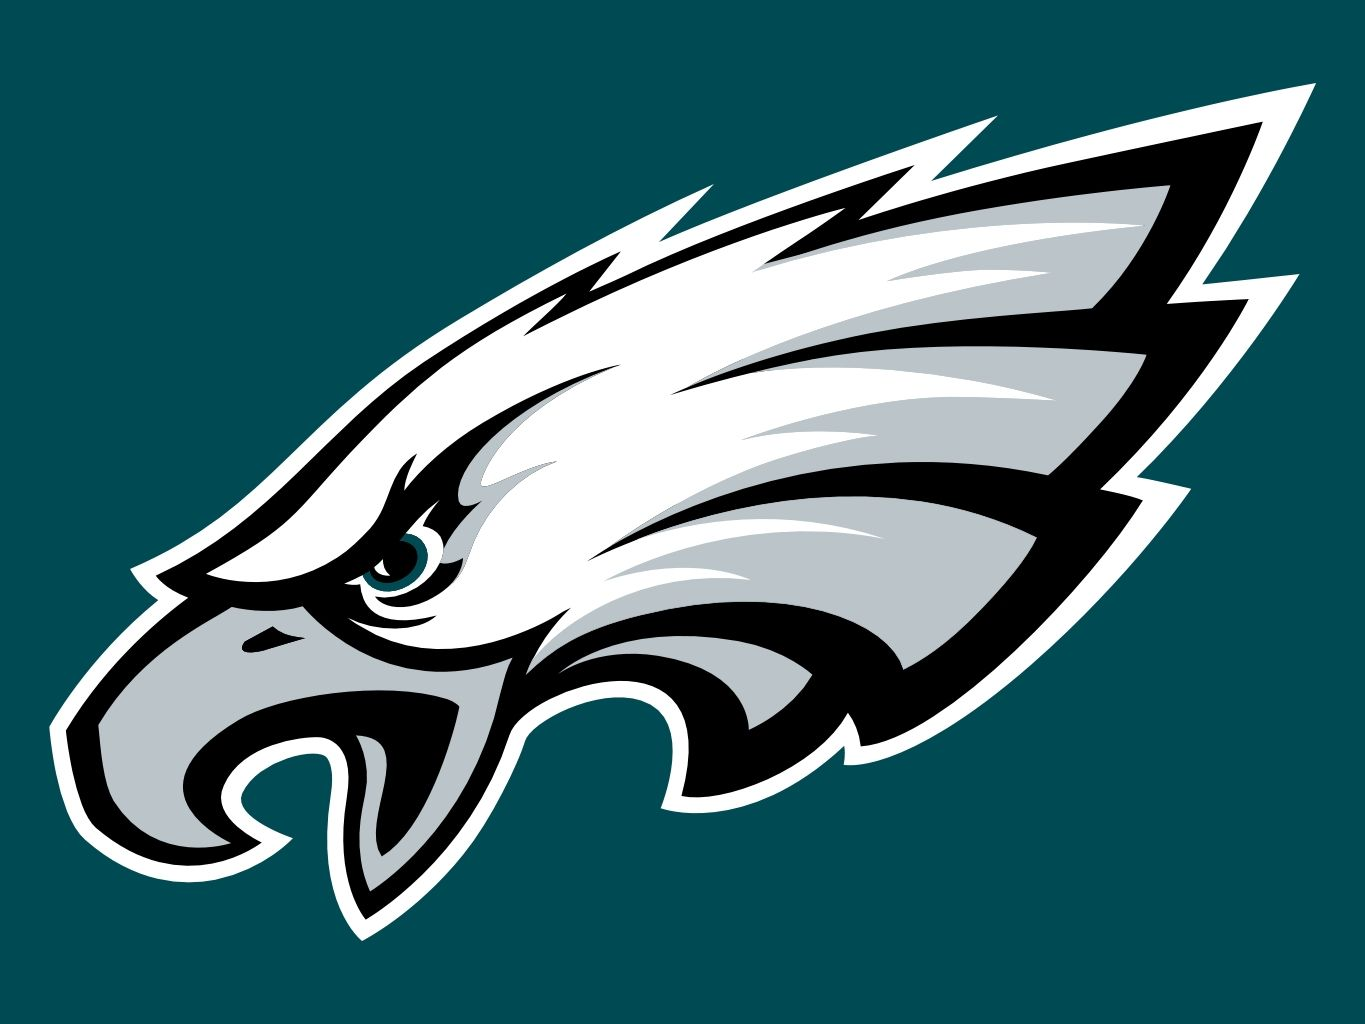 football team logos clip art philadelphia eagles logo doodles rh pinterest co uk philadelphia eagles clip art images philadelphia eagles clip art images